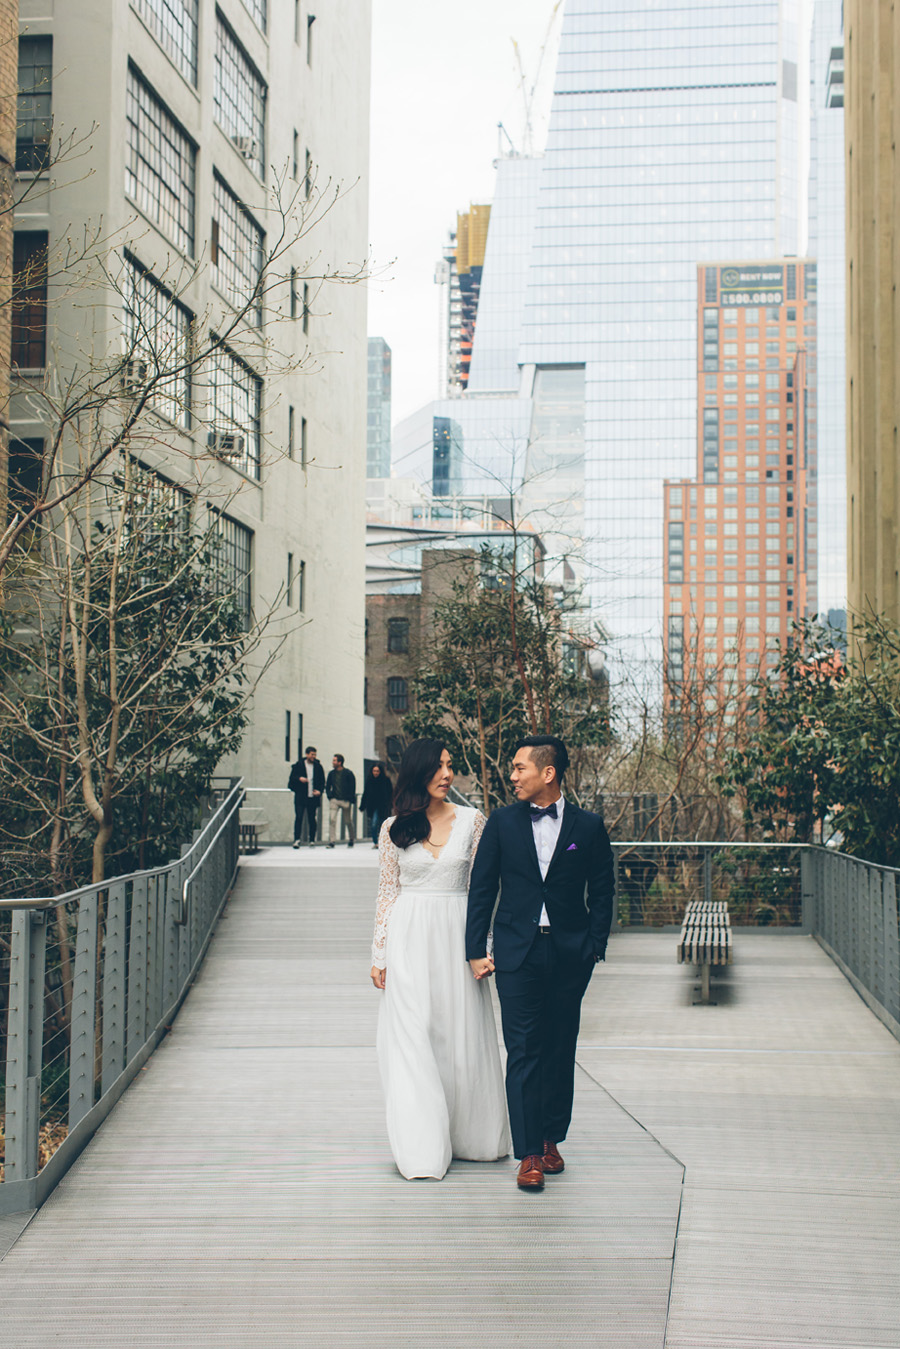 kate-thomas-nyc-highline-chelsea-engagement-photography-session-cynthiachung-0007.jpg